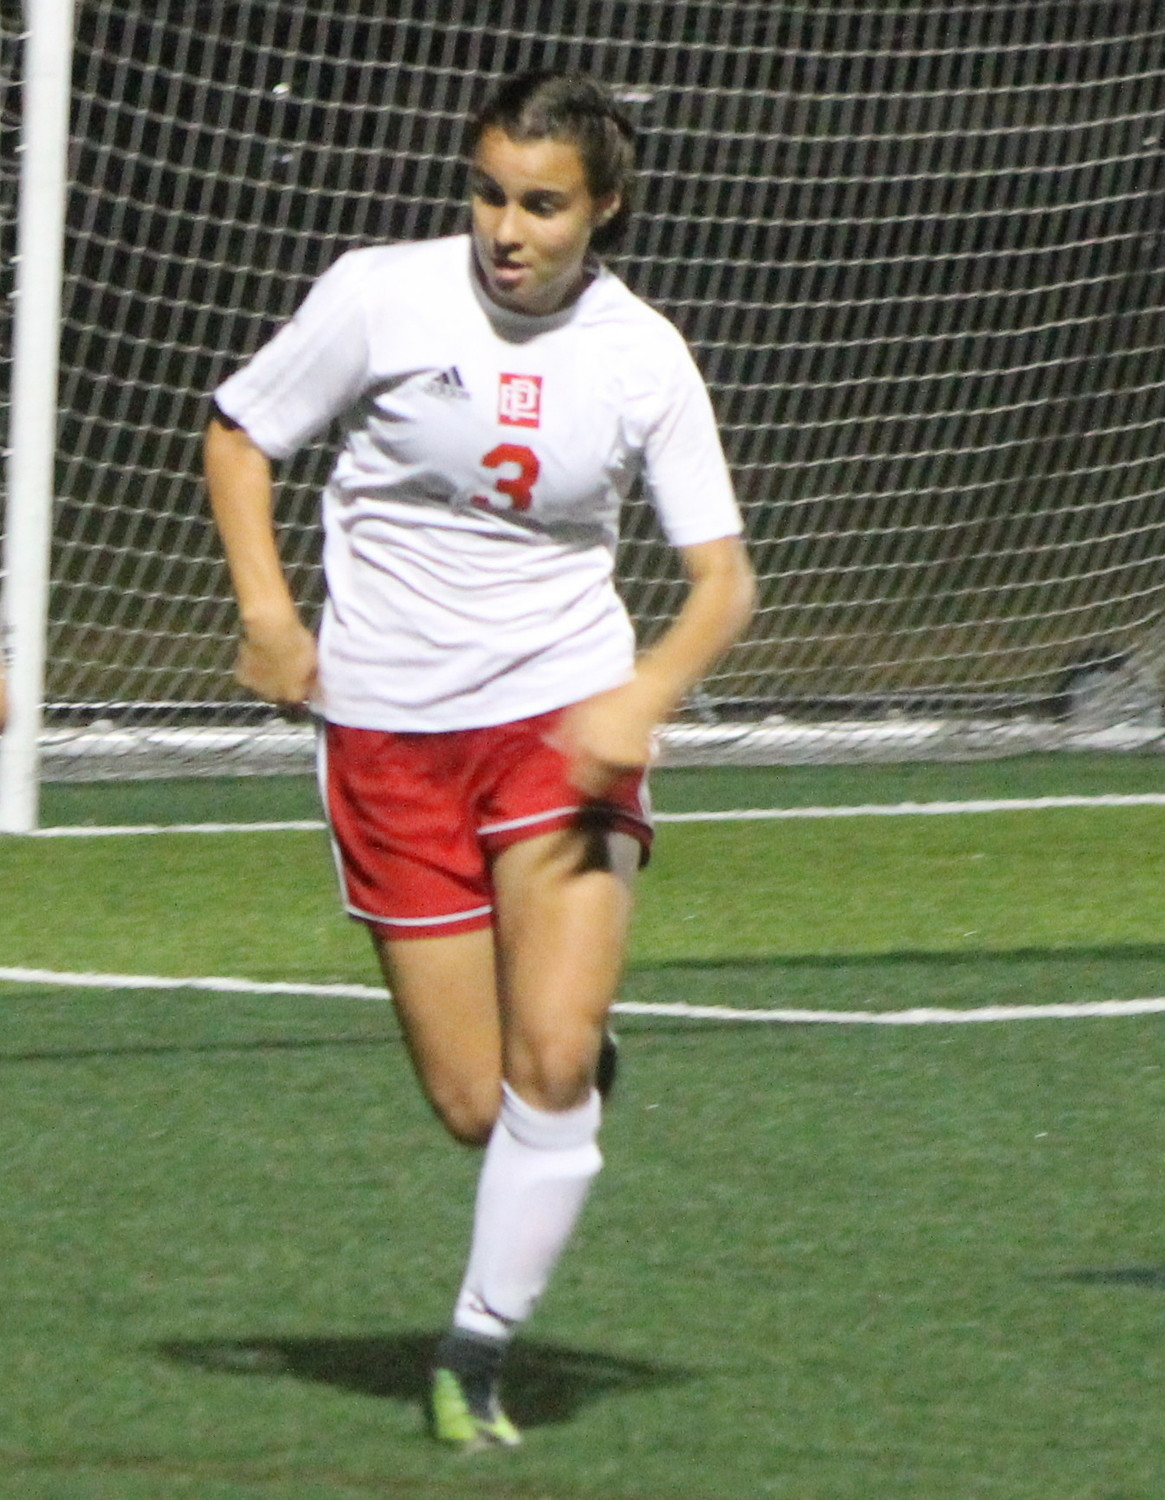 Alyssa DeOliveira netted a hat-trick for the Townies in their semifinal win over Narragansett.